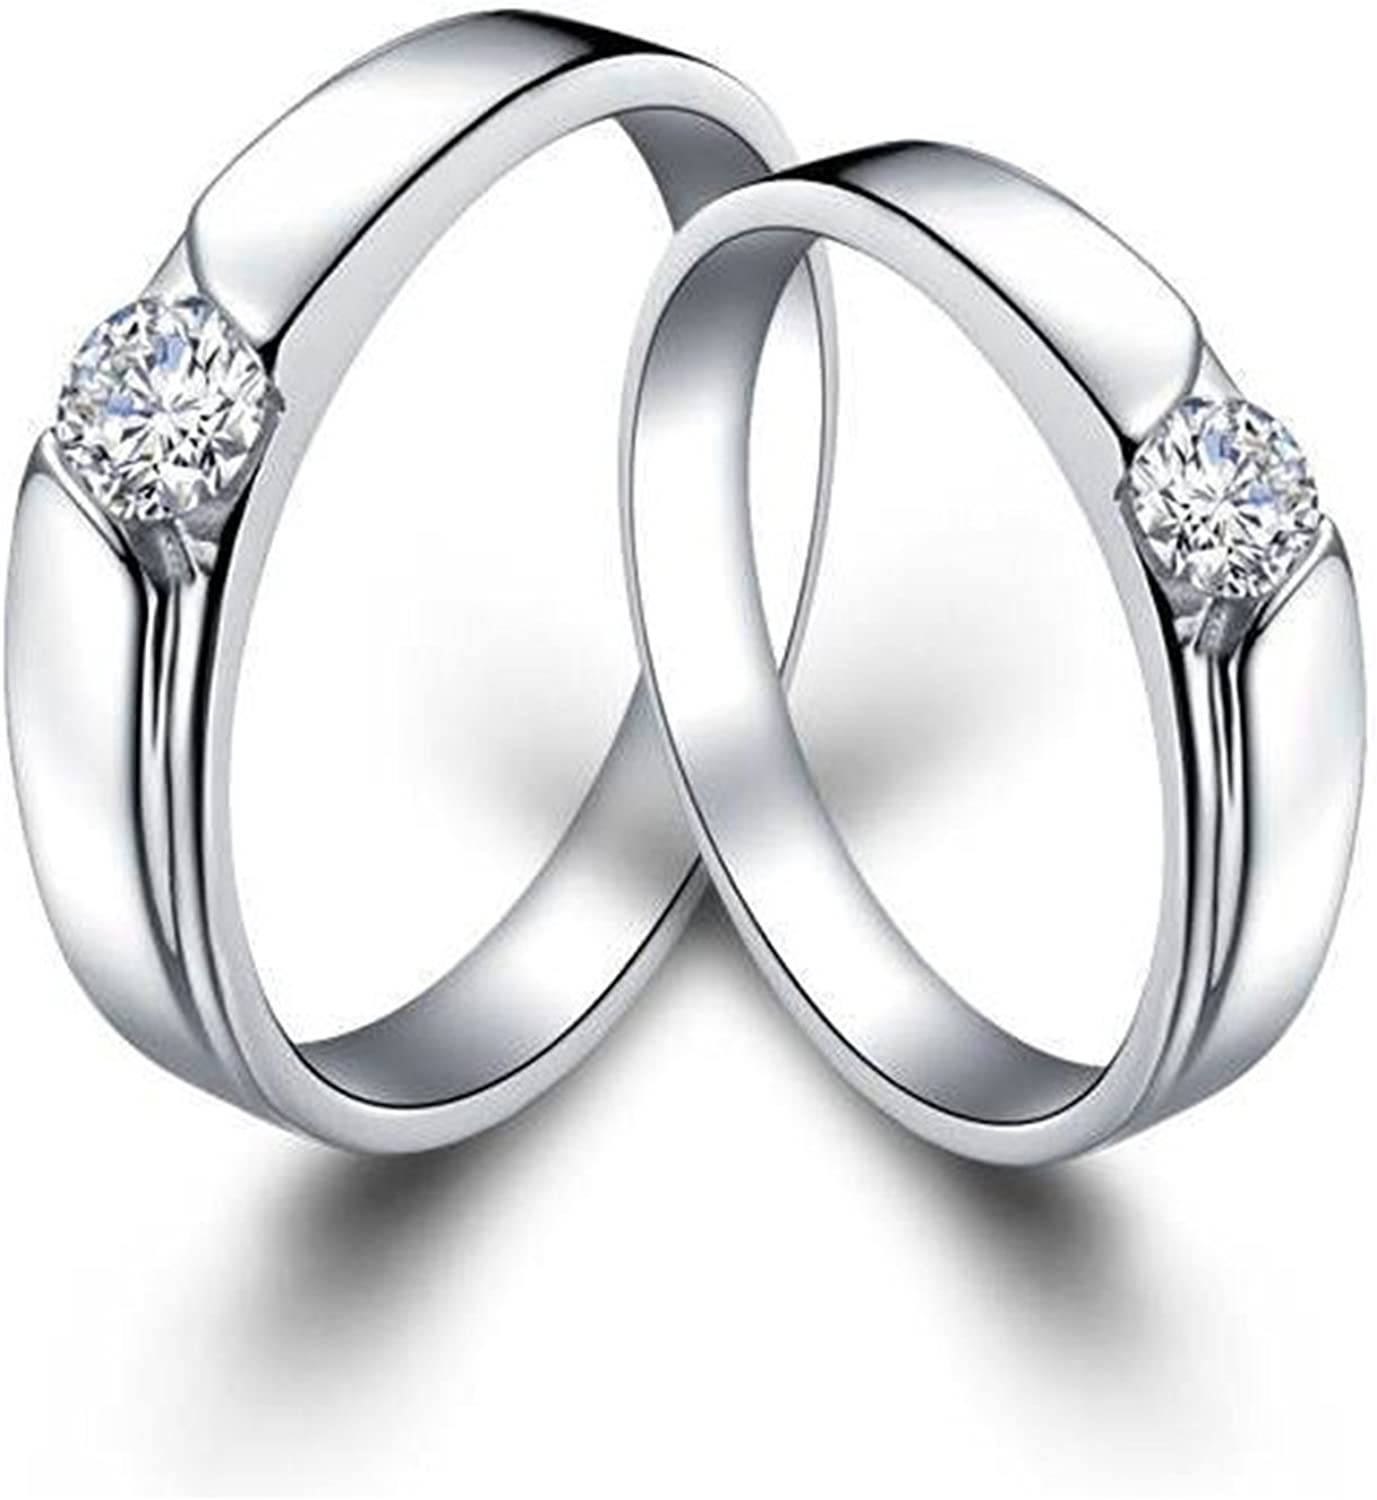 Bishilin Silver Plated Engagement Rings Best Promise Rings for Her Anniversary Wedding Bands Size 8